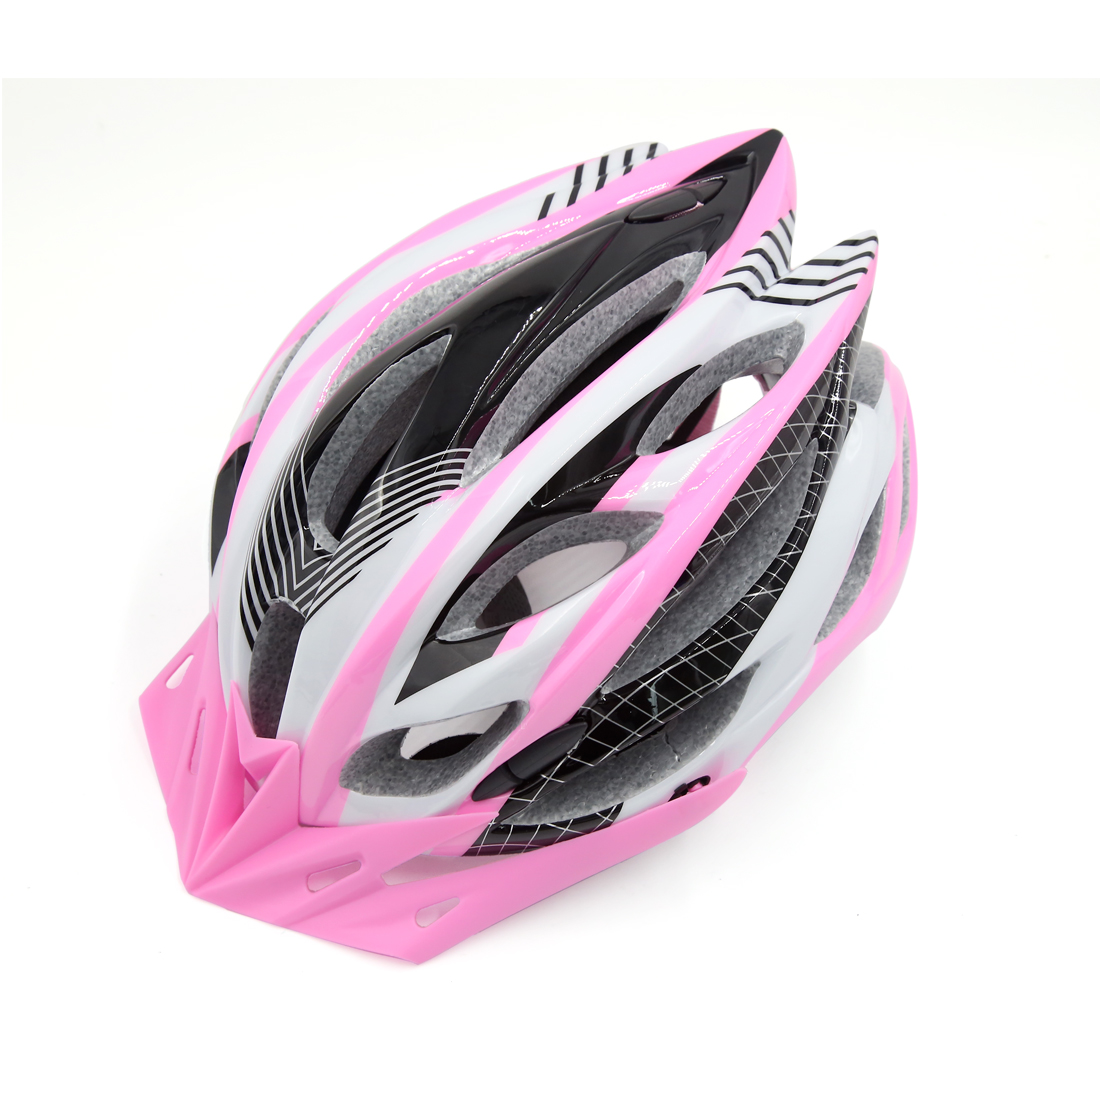 Pink Black Adjustable Adult Helmet w Visor for Road Bike Racing Bicycle Cycling